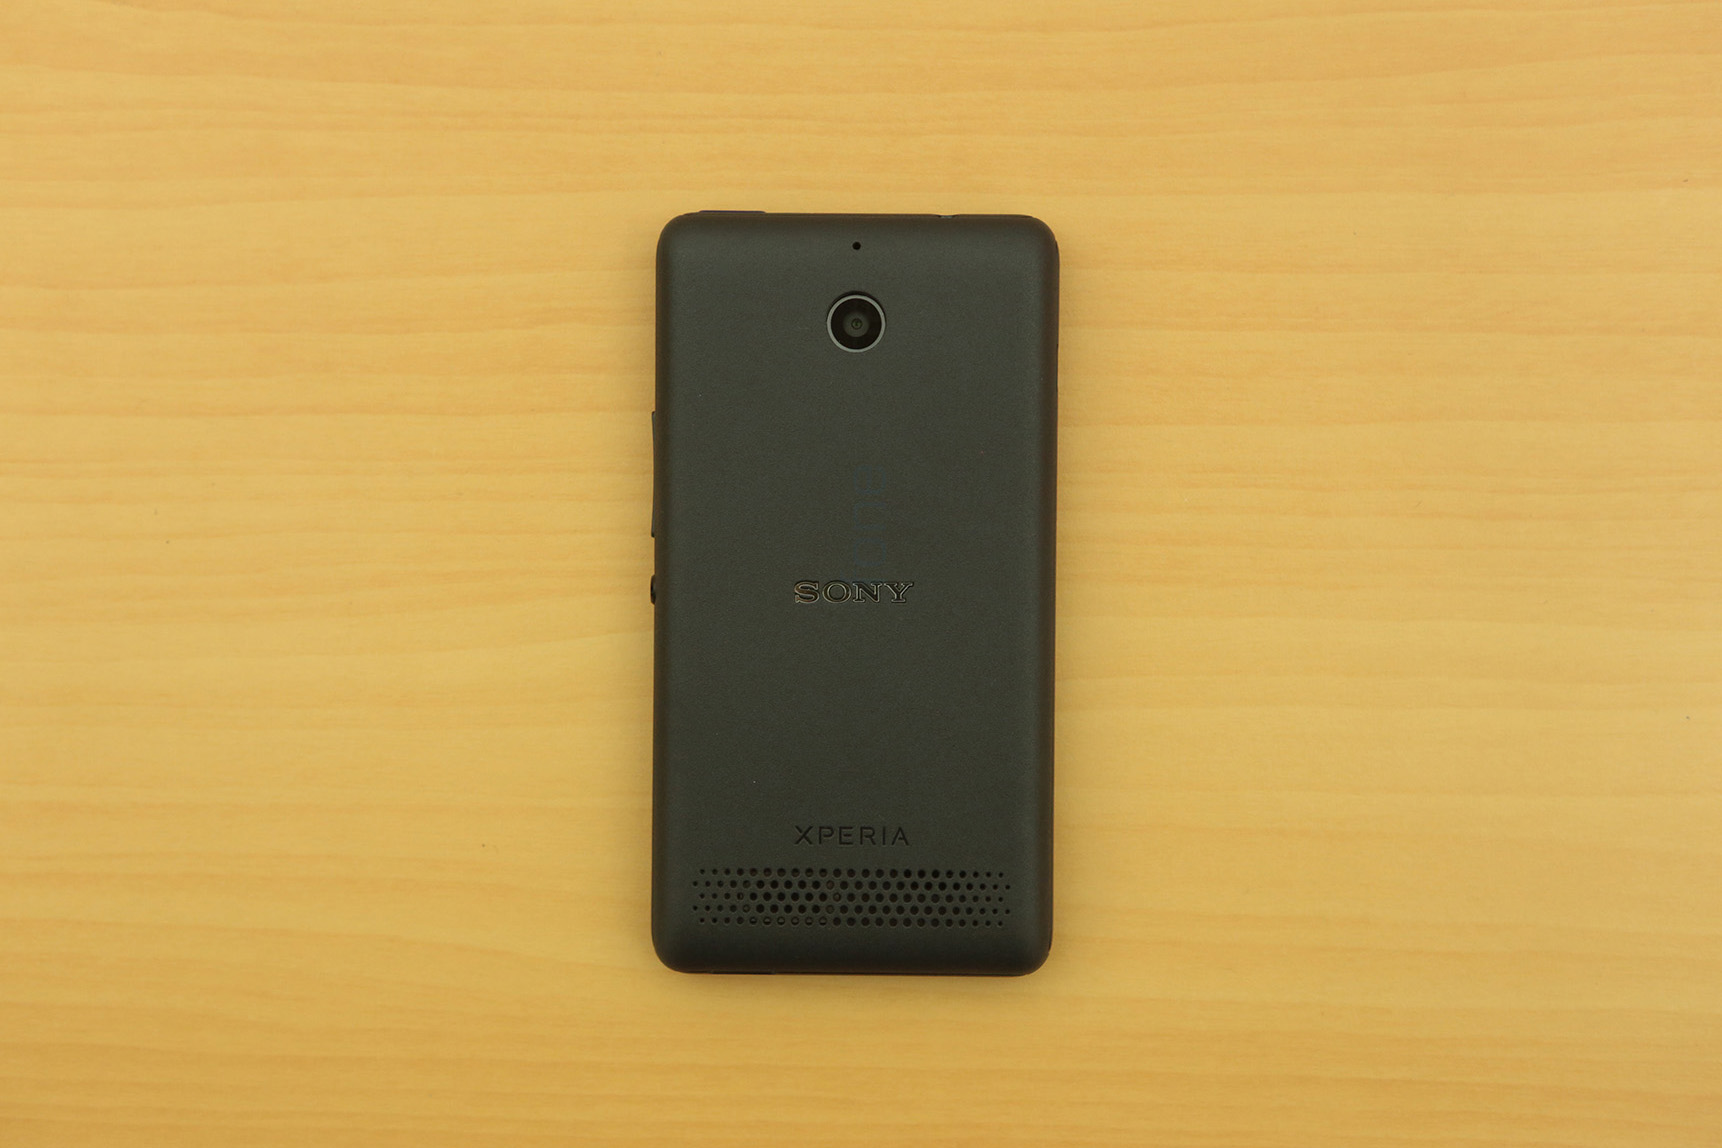 http://images.fonearena.com/blog/wp-content/uploads/2014/03/Sony-Xperia-E1-Dual-Unboxing-6.jpg